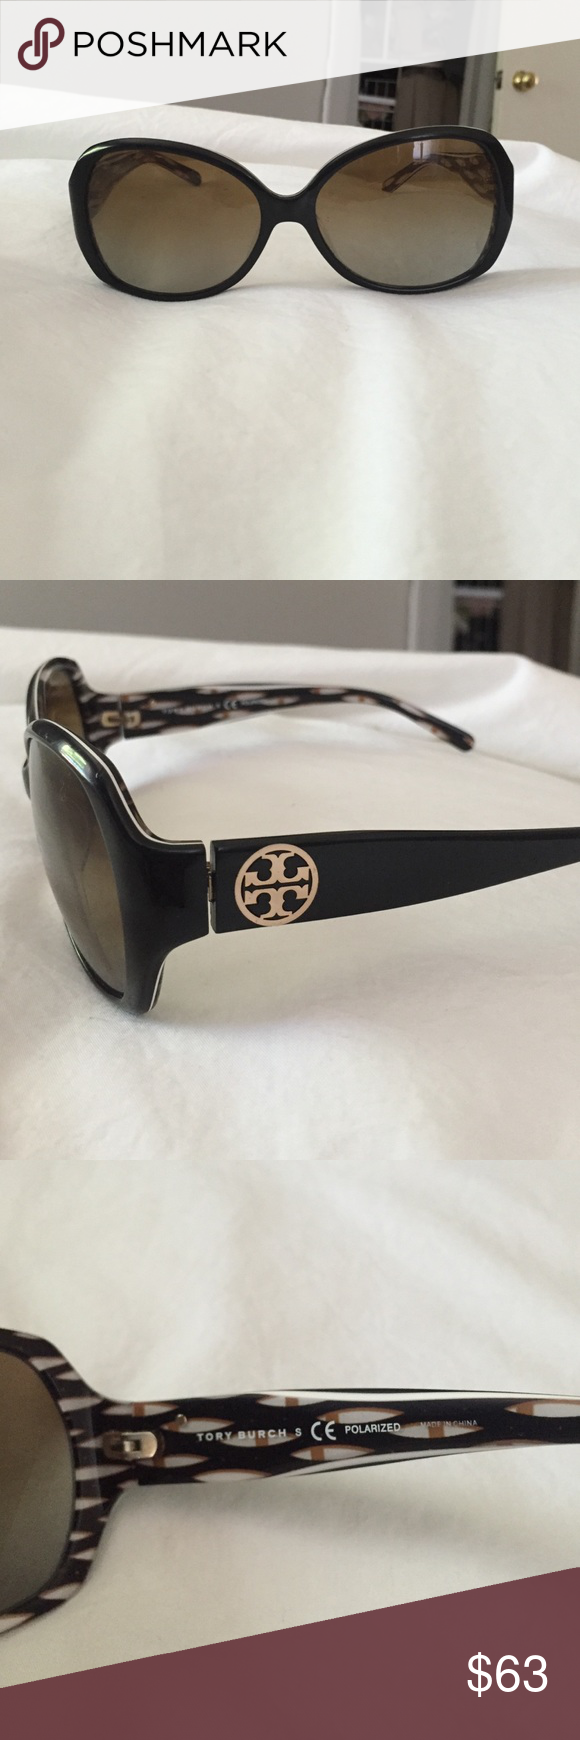 8a237b6ccccf Tory Burch Sunglasses TY7019 Frame style: cat eye Lens: polarized,  gradient. There is some wear on the lens but does not disturb viewing Tory  Burch ...